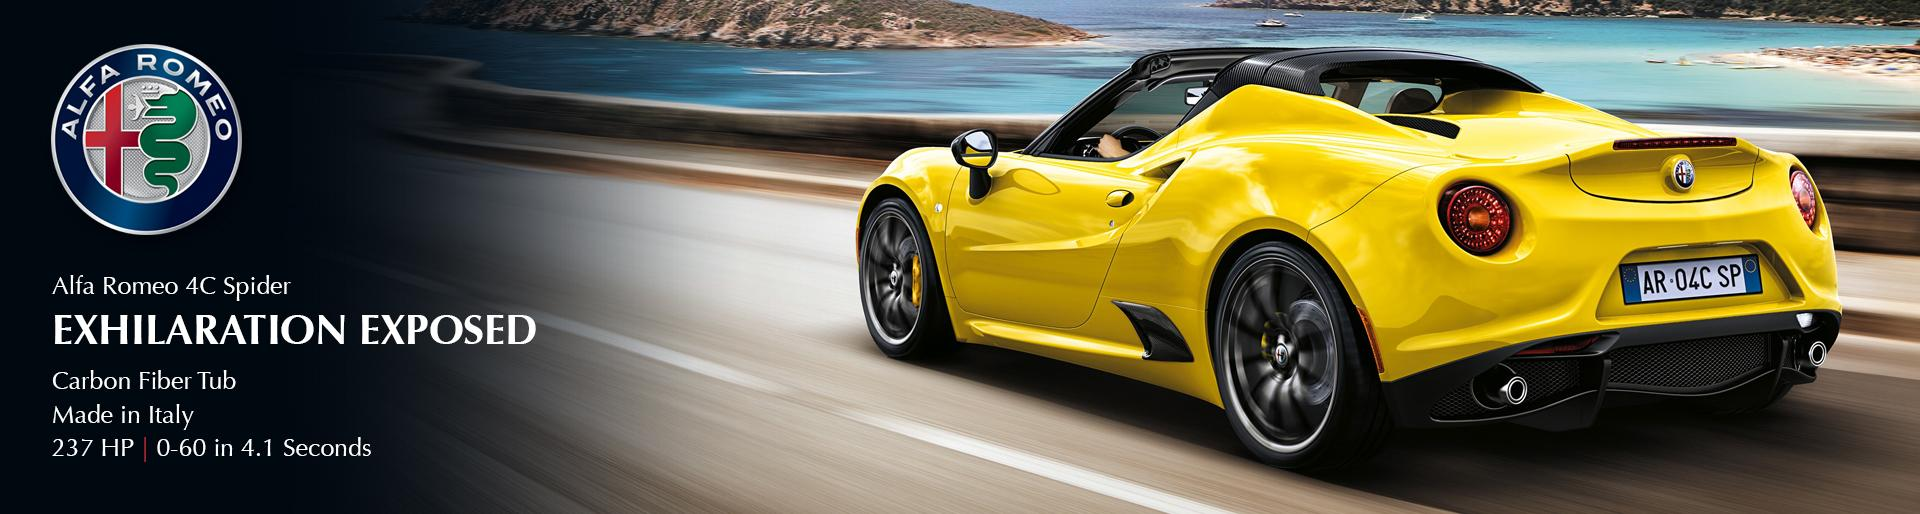 Alfa Romeo 4c Spider. Exhilaration Exposed. Carbon Fiber Tub, Made in Italy. 237 HP, 0 to 60 in 4.1 seconds